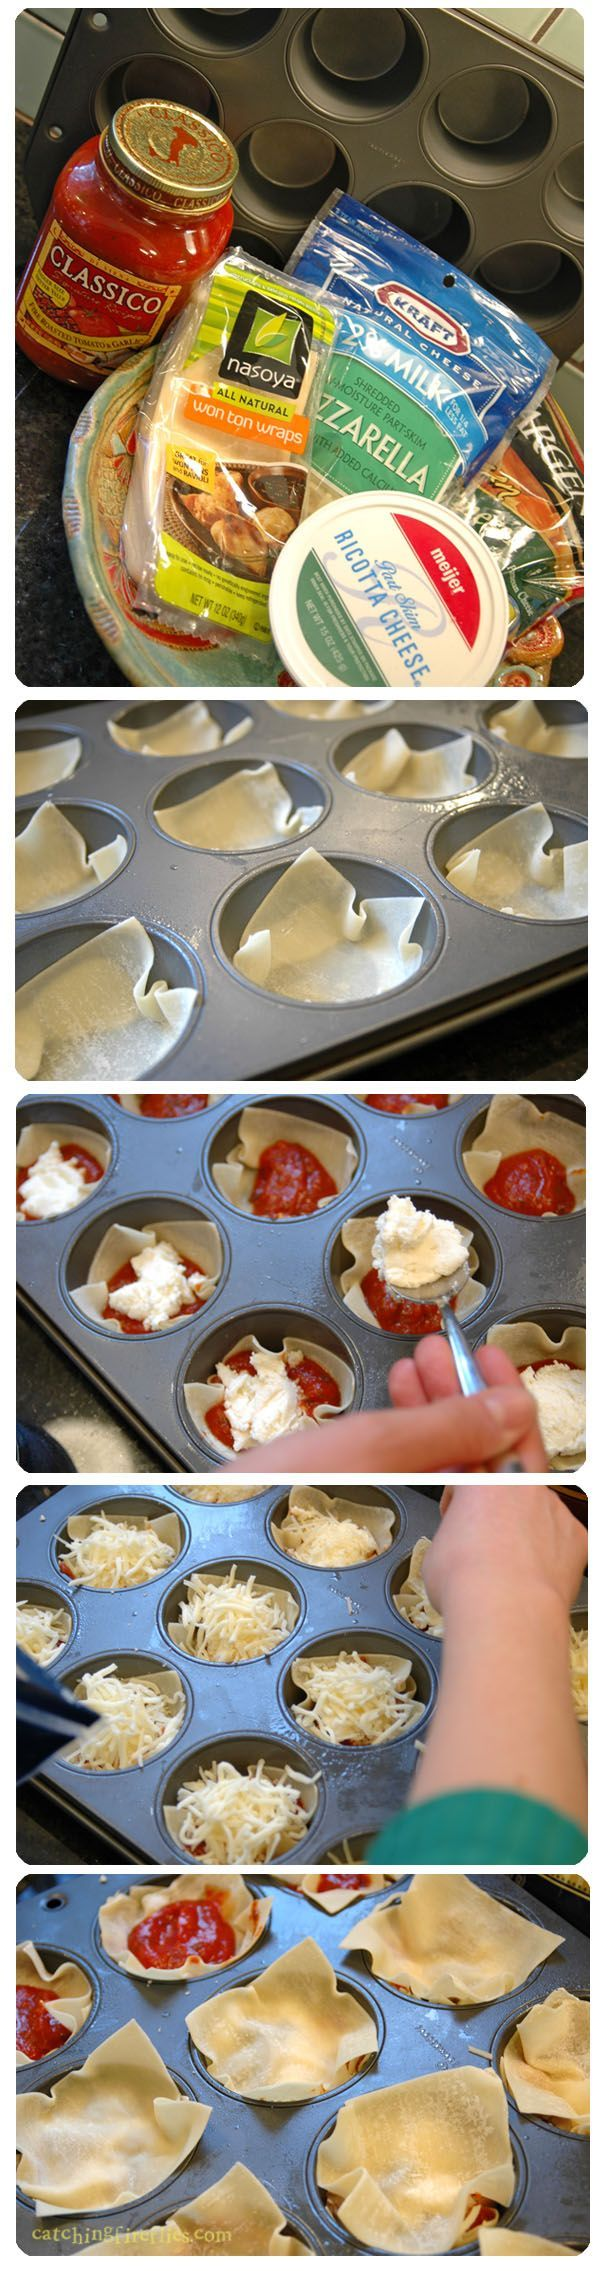 Lasagna Cups | creative gift ideas & news at catching fireflies